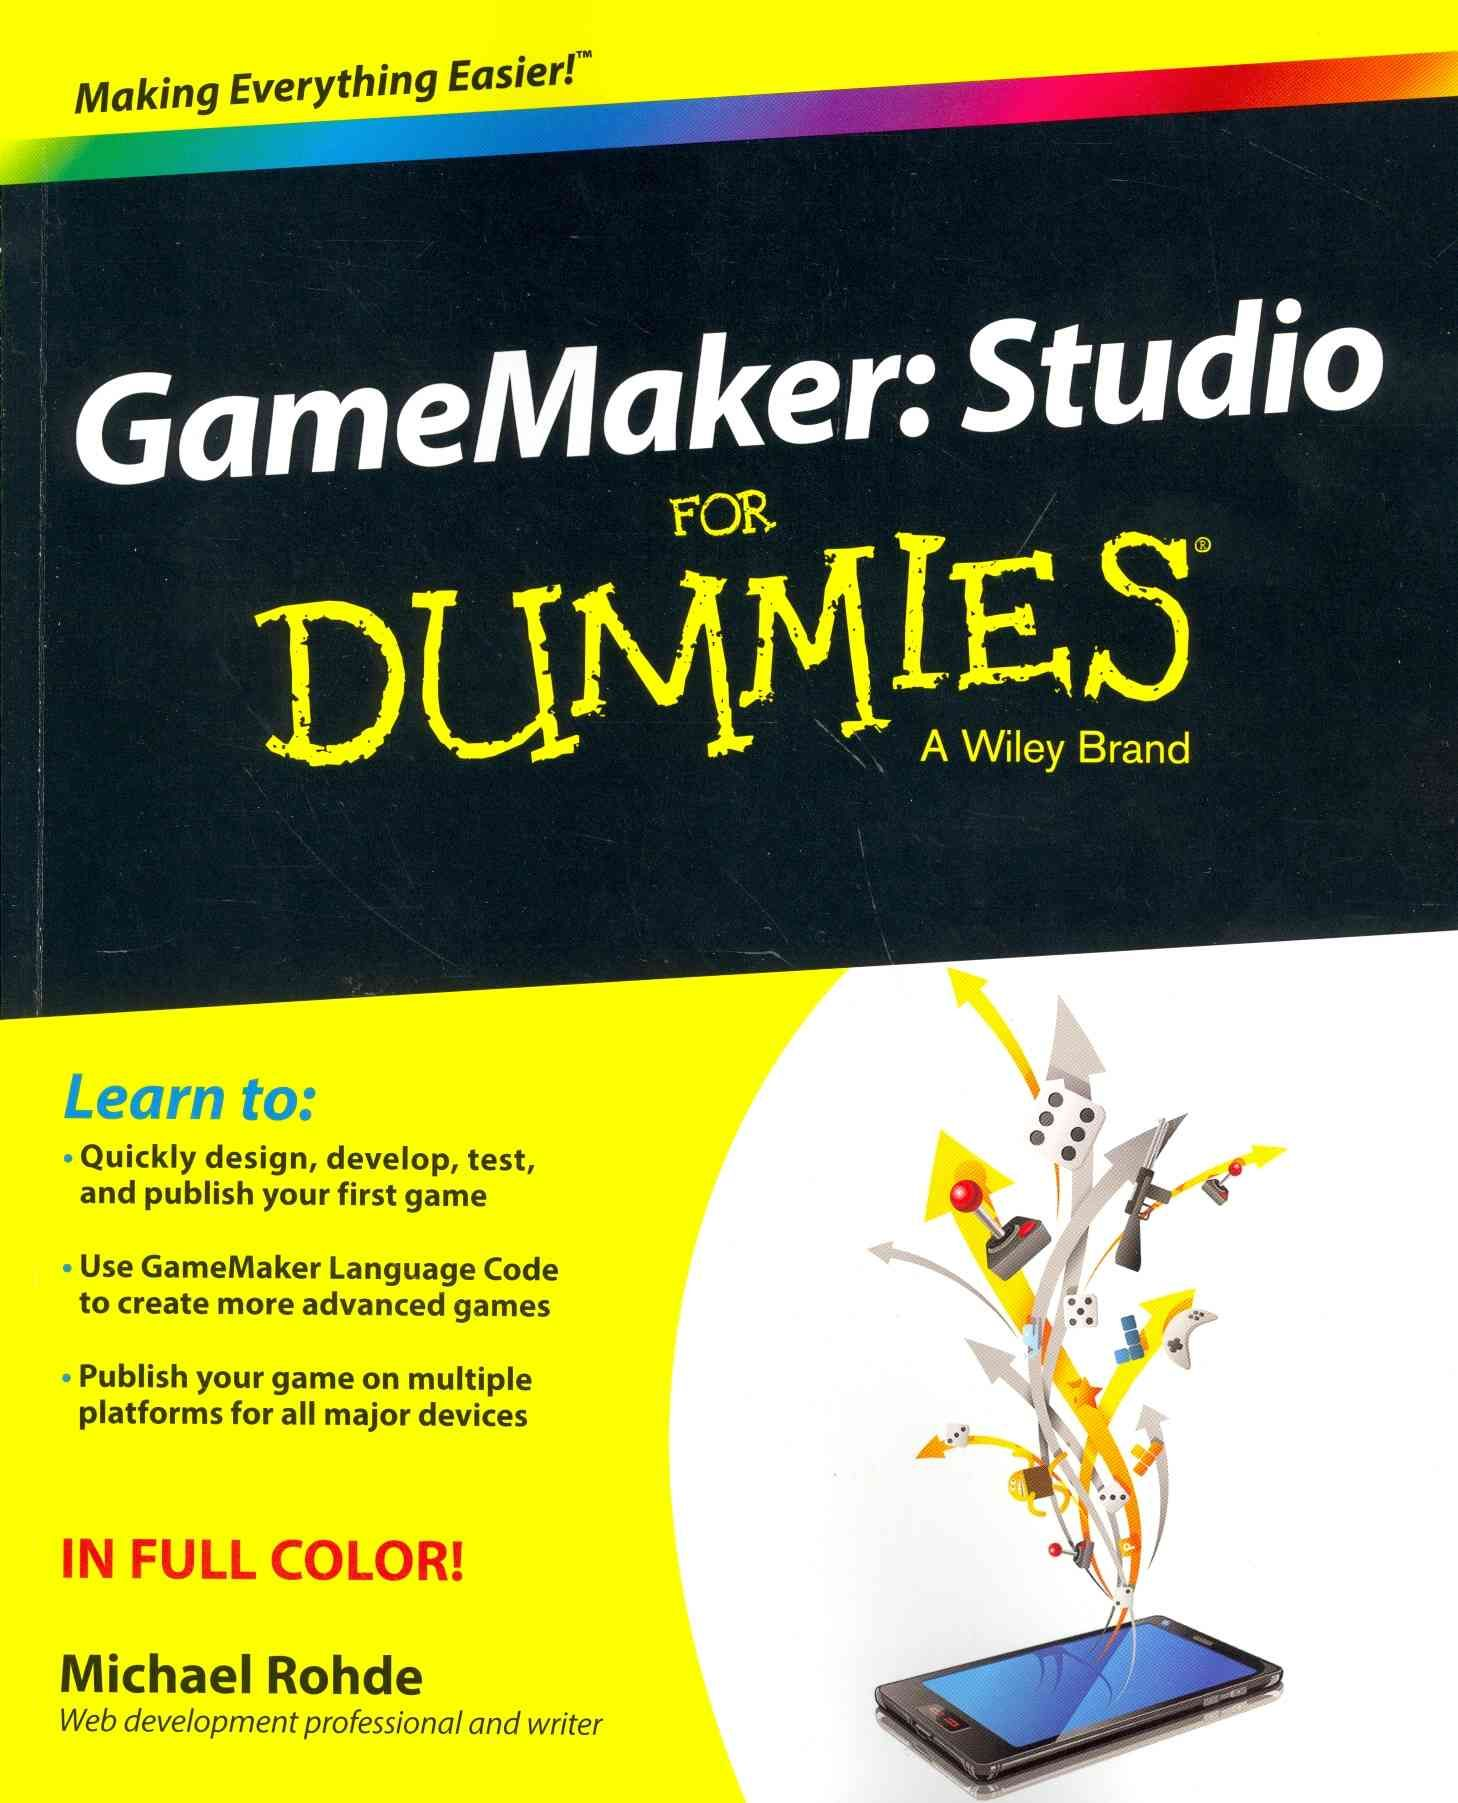 Gamemaker Studio for Dummies (With images) Game maker